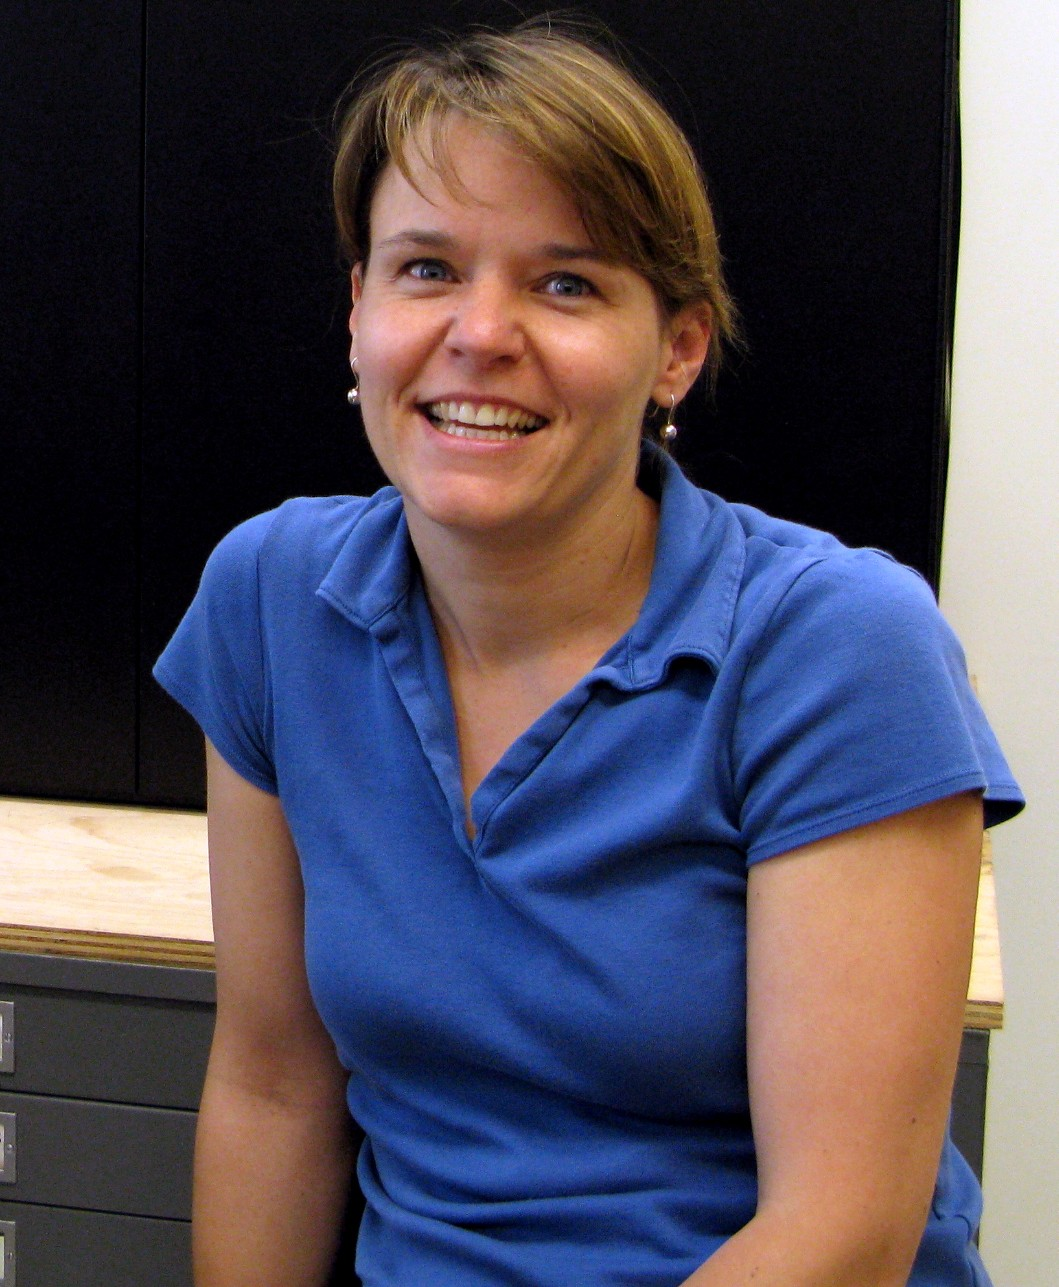 Jaelyn Eberle (Foto: University of Colorado Boulder)